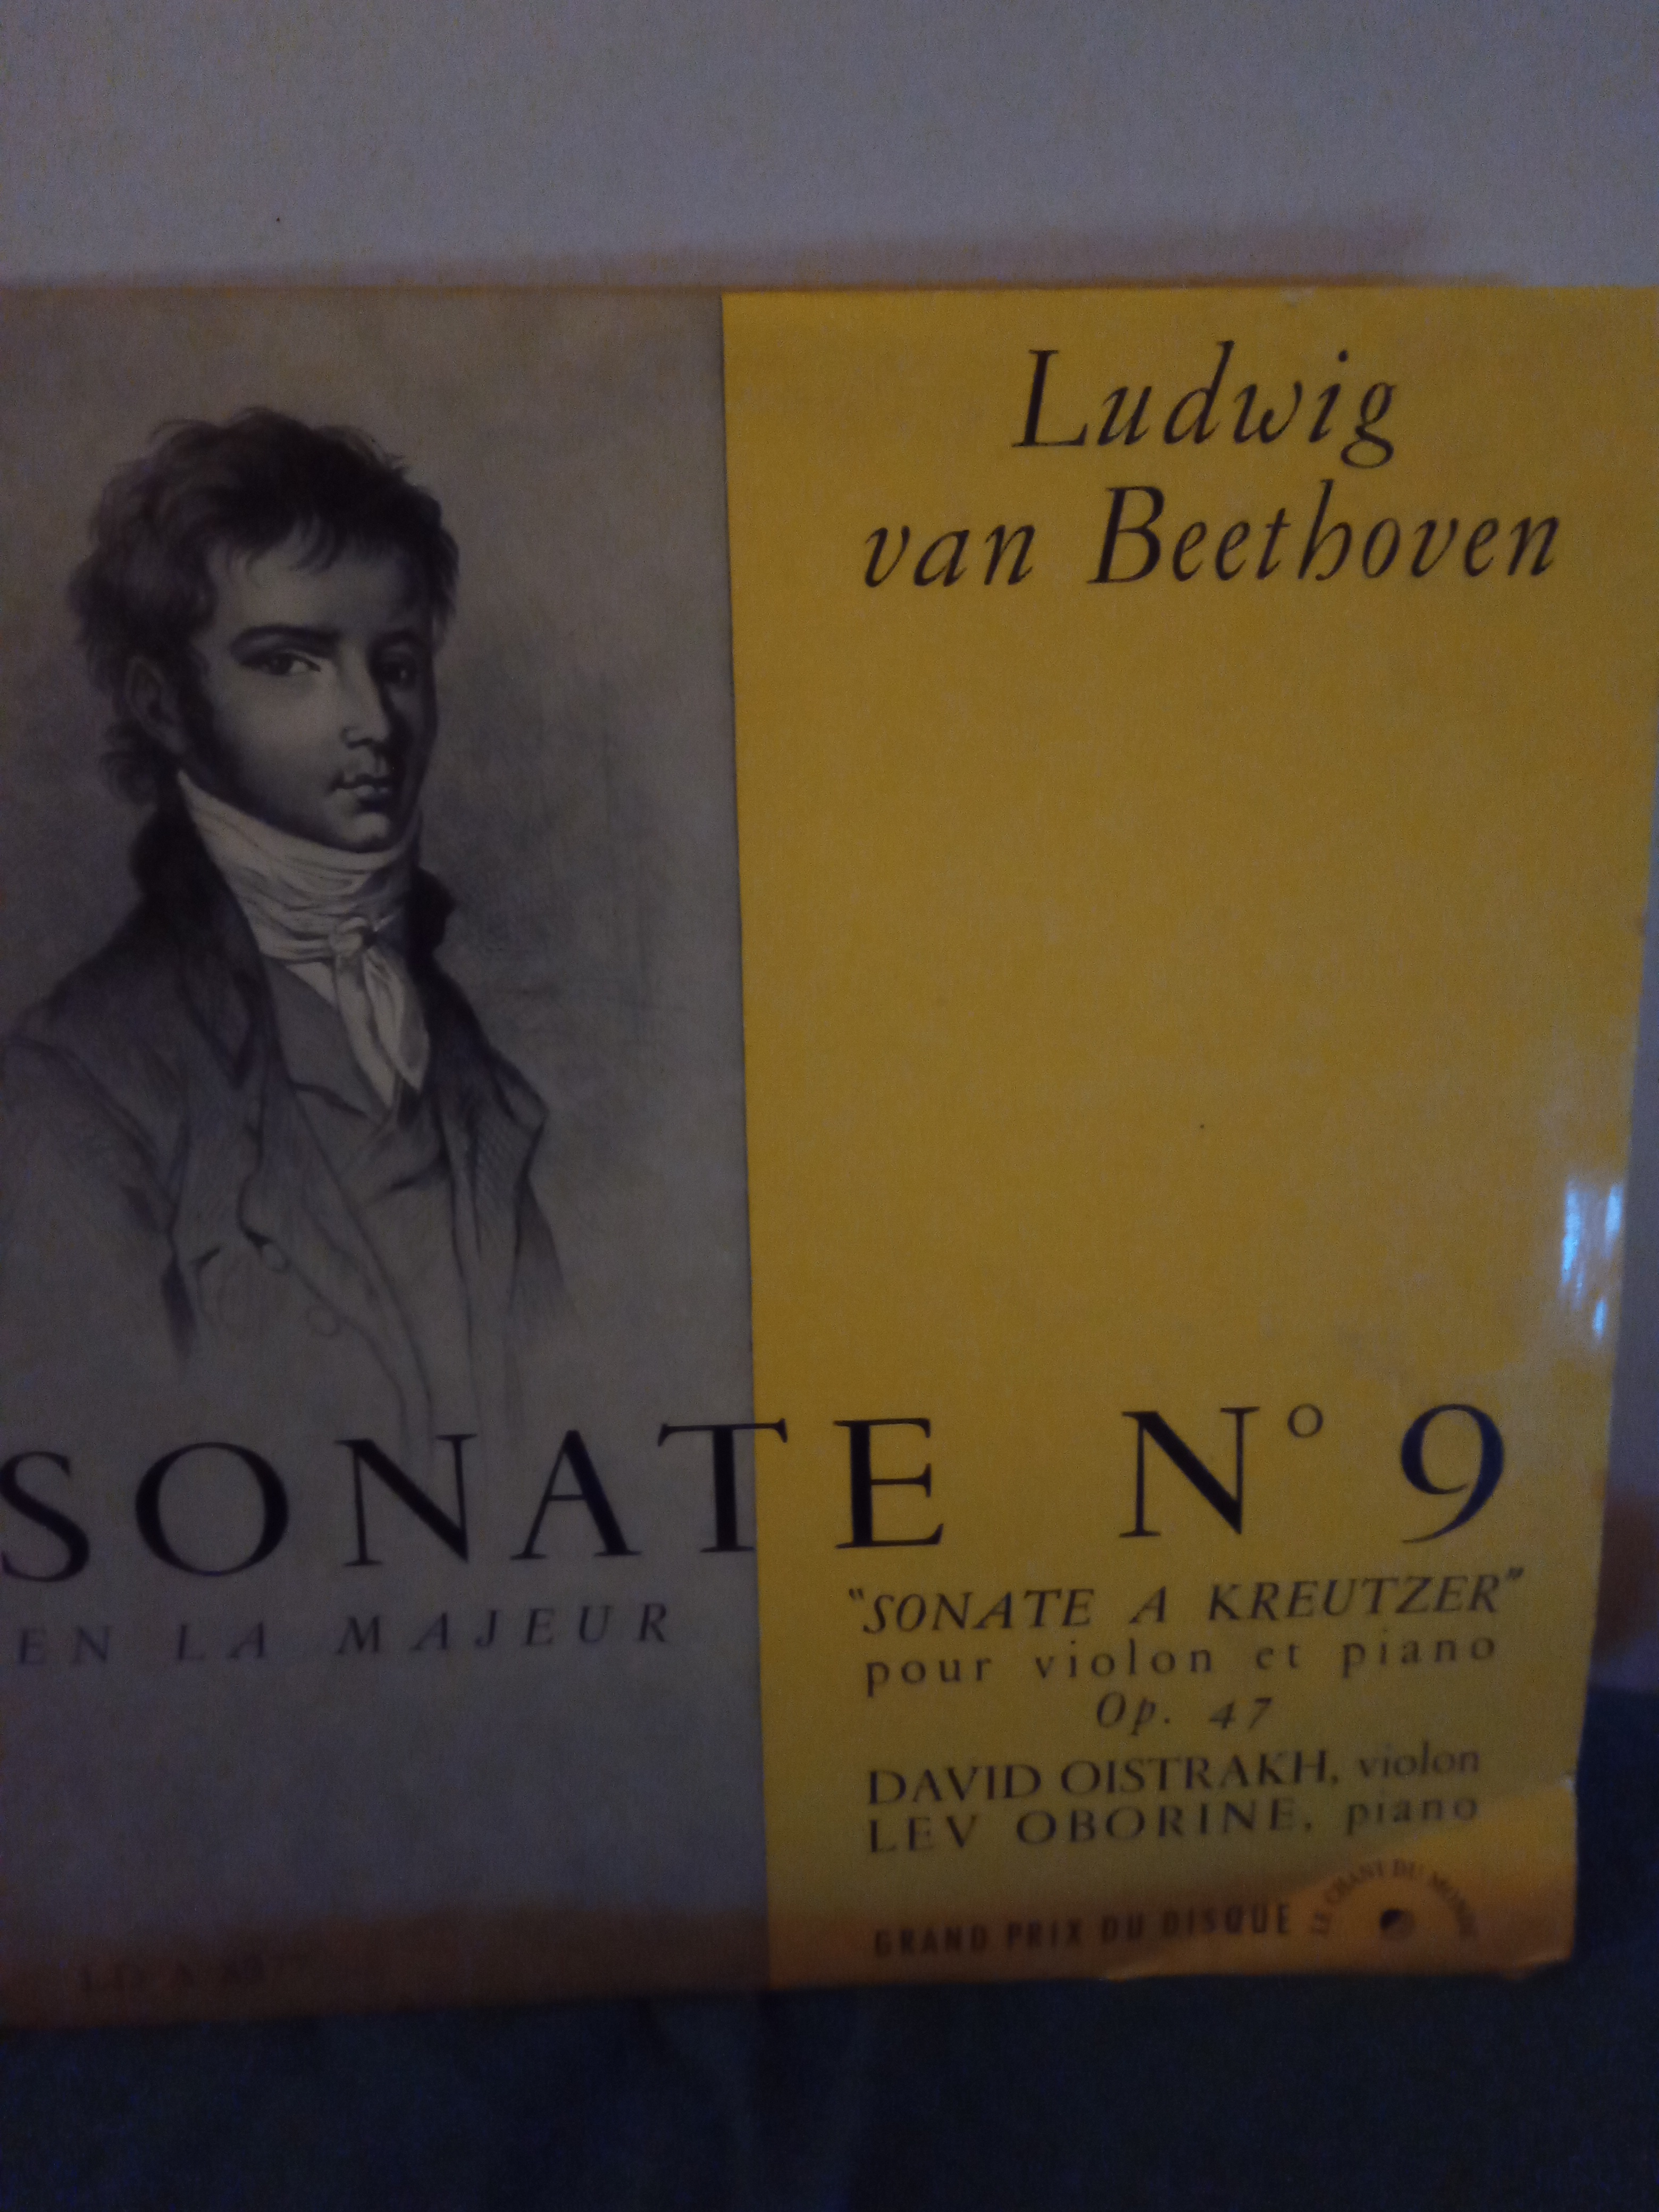 Buy vinyl artist% Sonate numéro 9 for sale